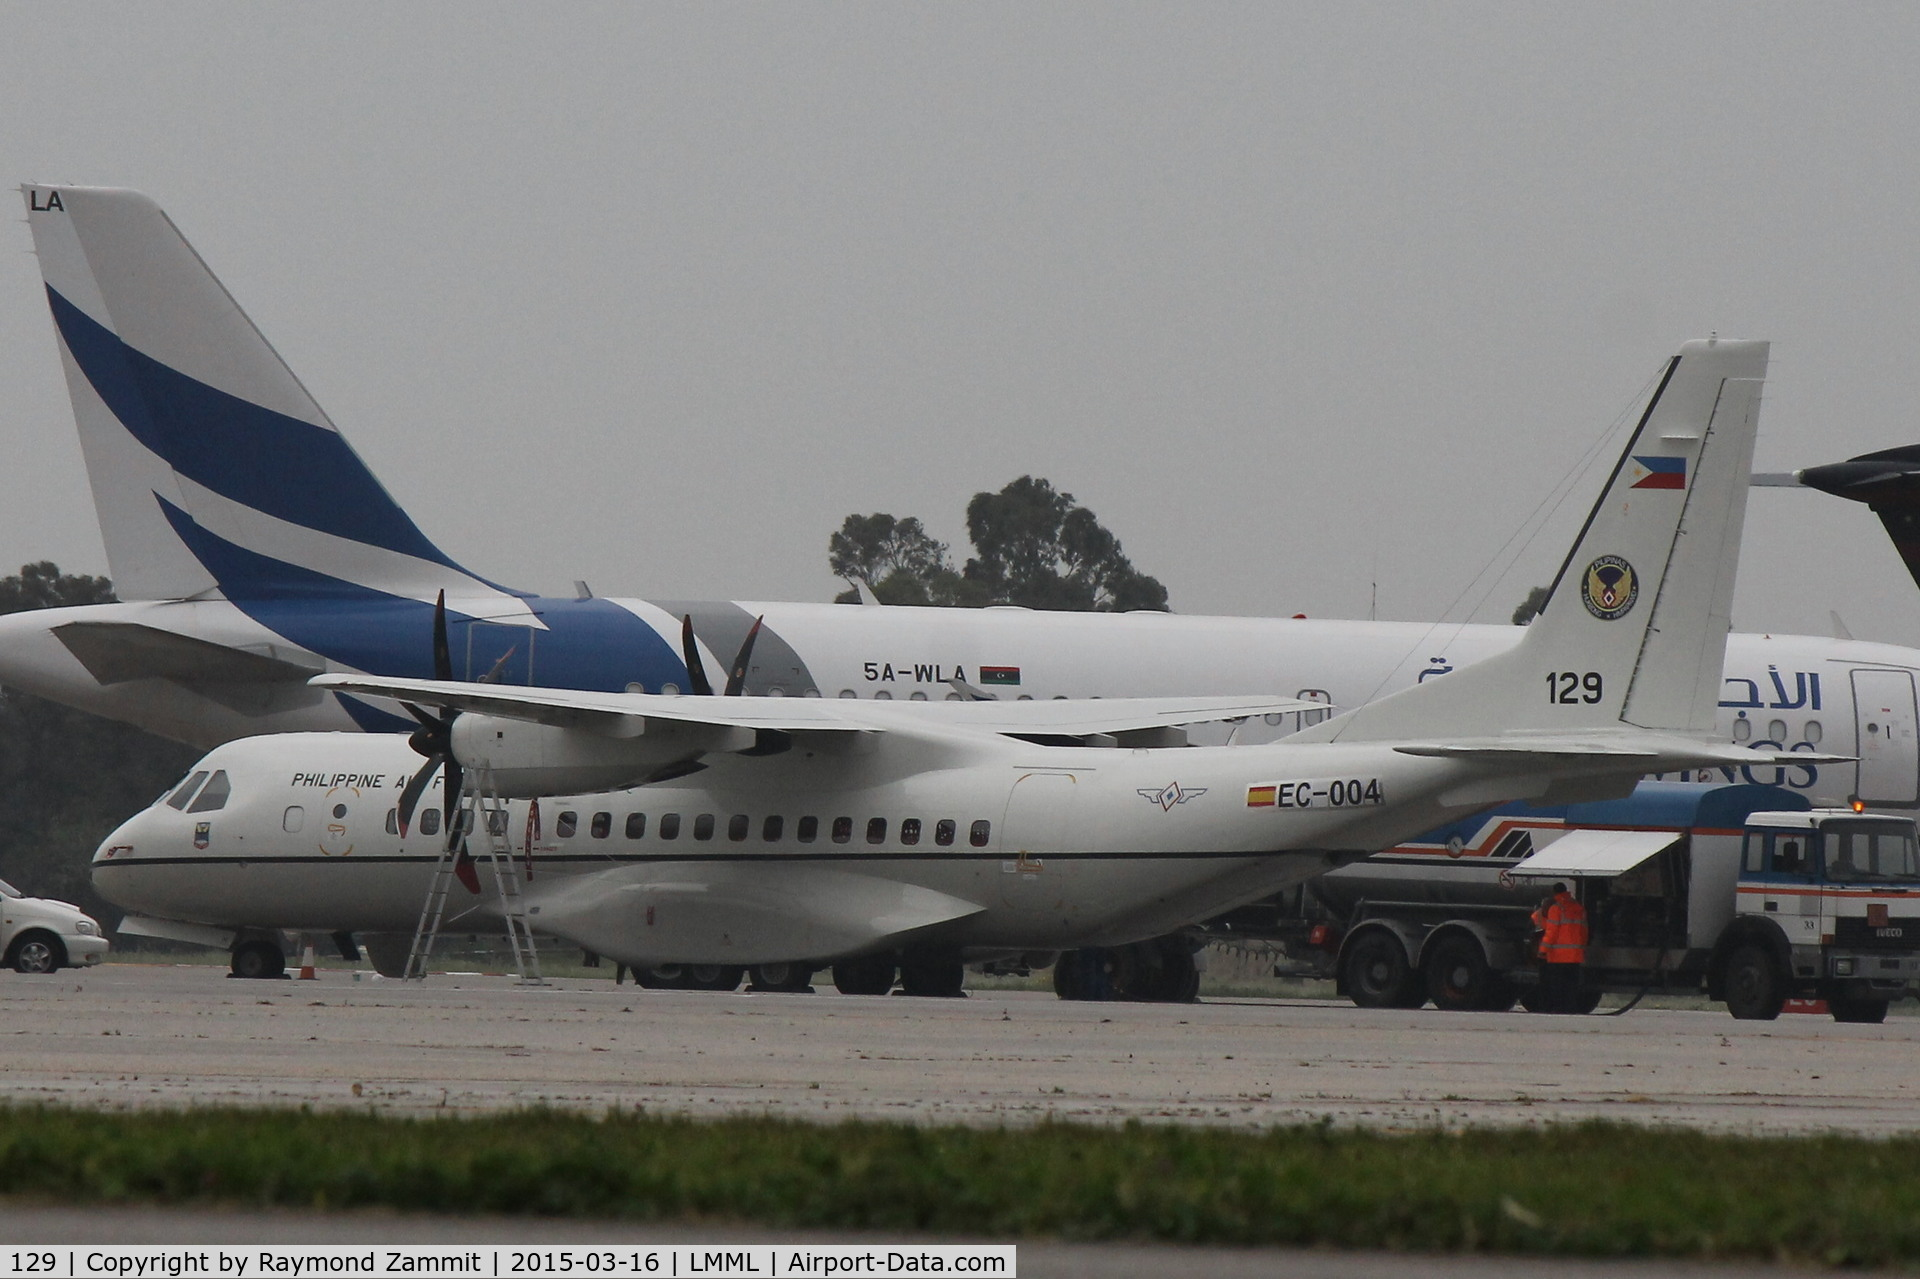 129, Airtech CN-235-200M C/N C129, Casa235 129 Philippines Air Force made a stopover in Malta during delivery.